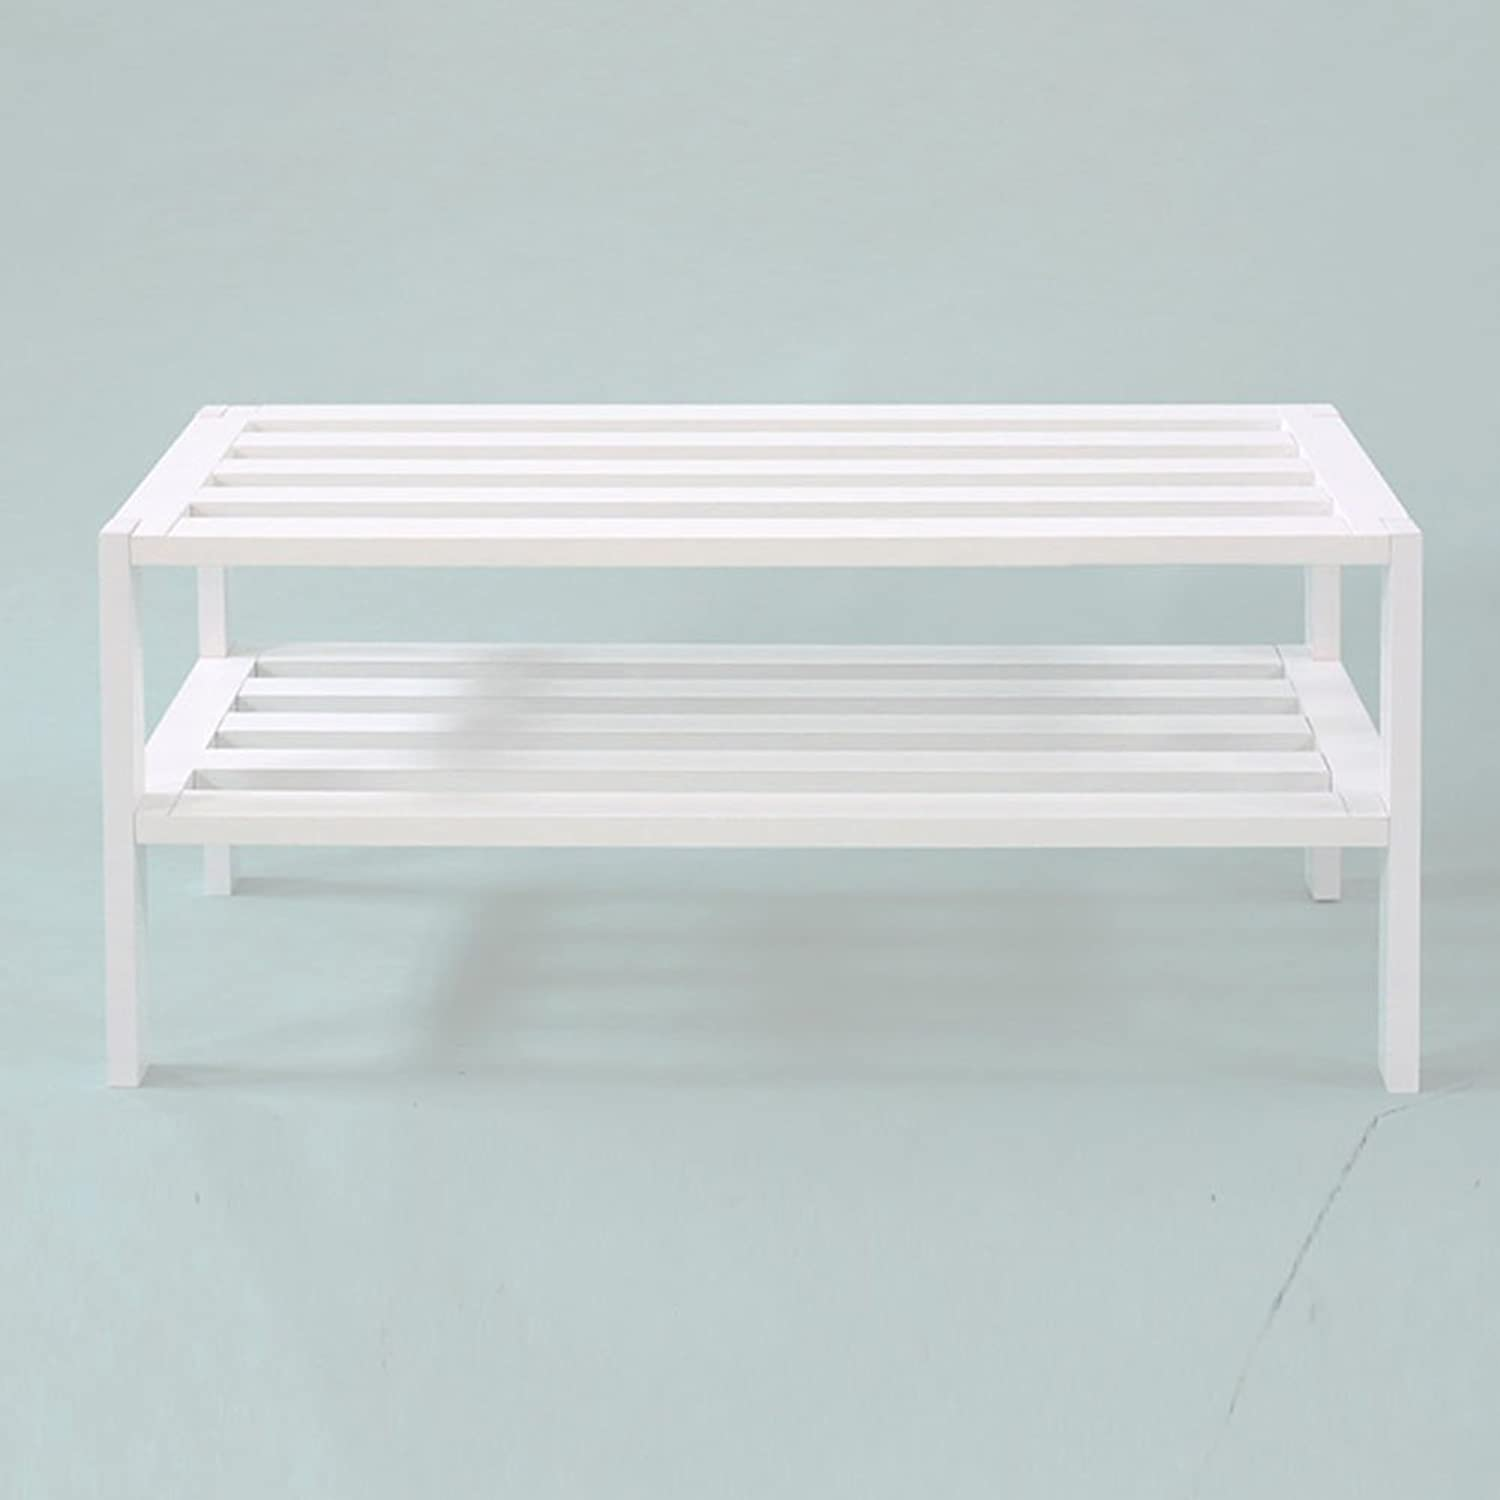 JIANFEI shoes Shelf Rack 2- Tier Simple Assembly Openwork Board Storage Cabinet, Wood (color   White)